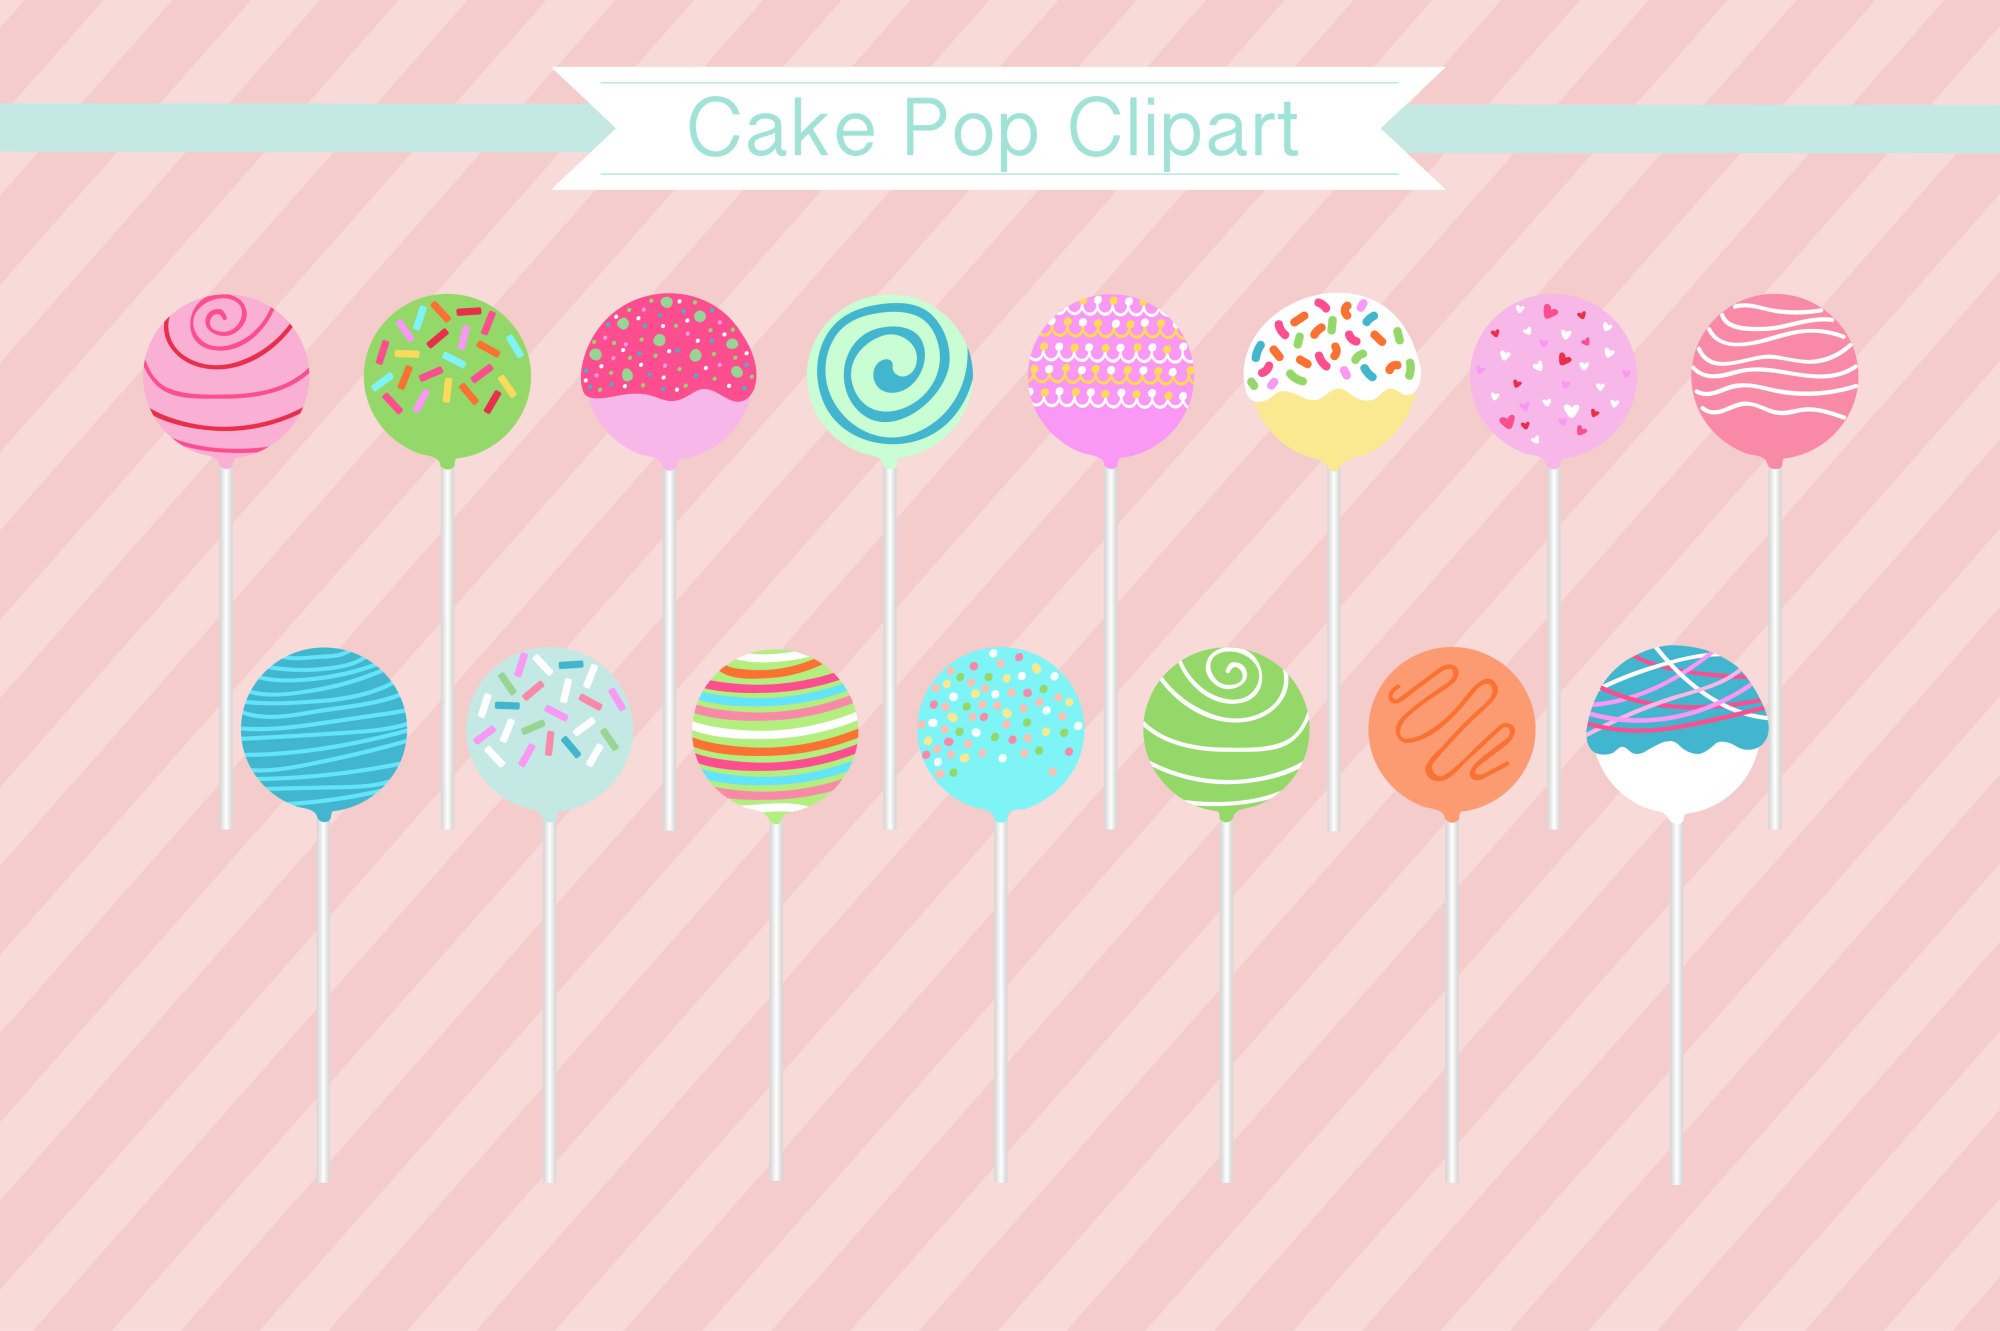 Cake Pop Clipart, Cake Pops example image 1